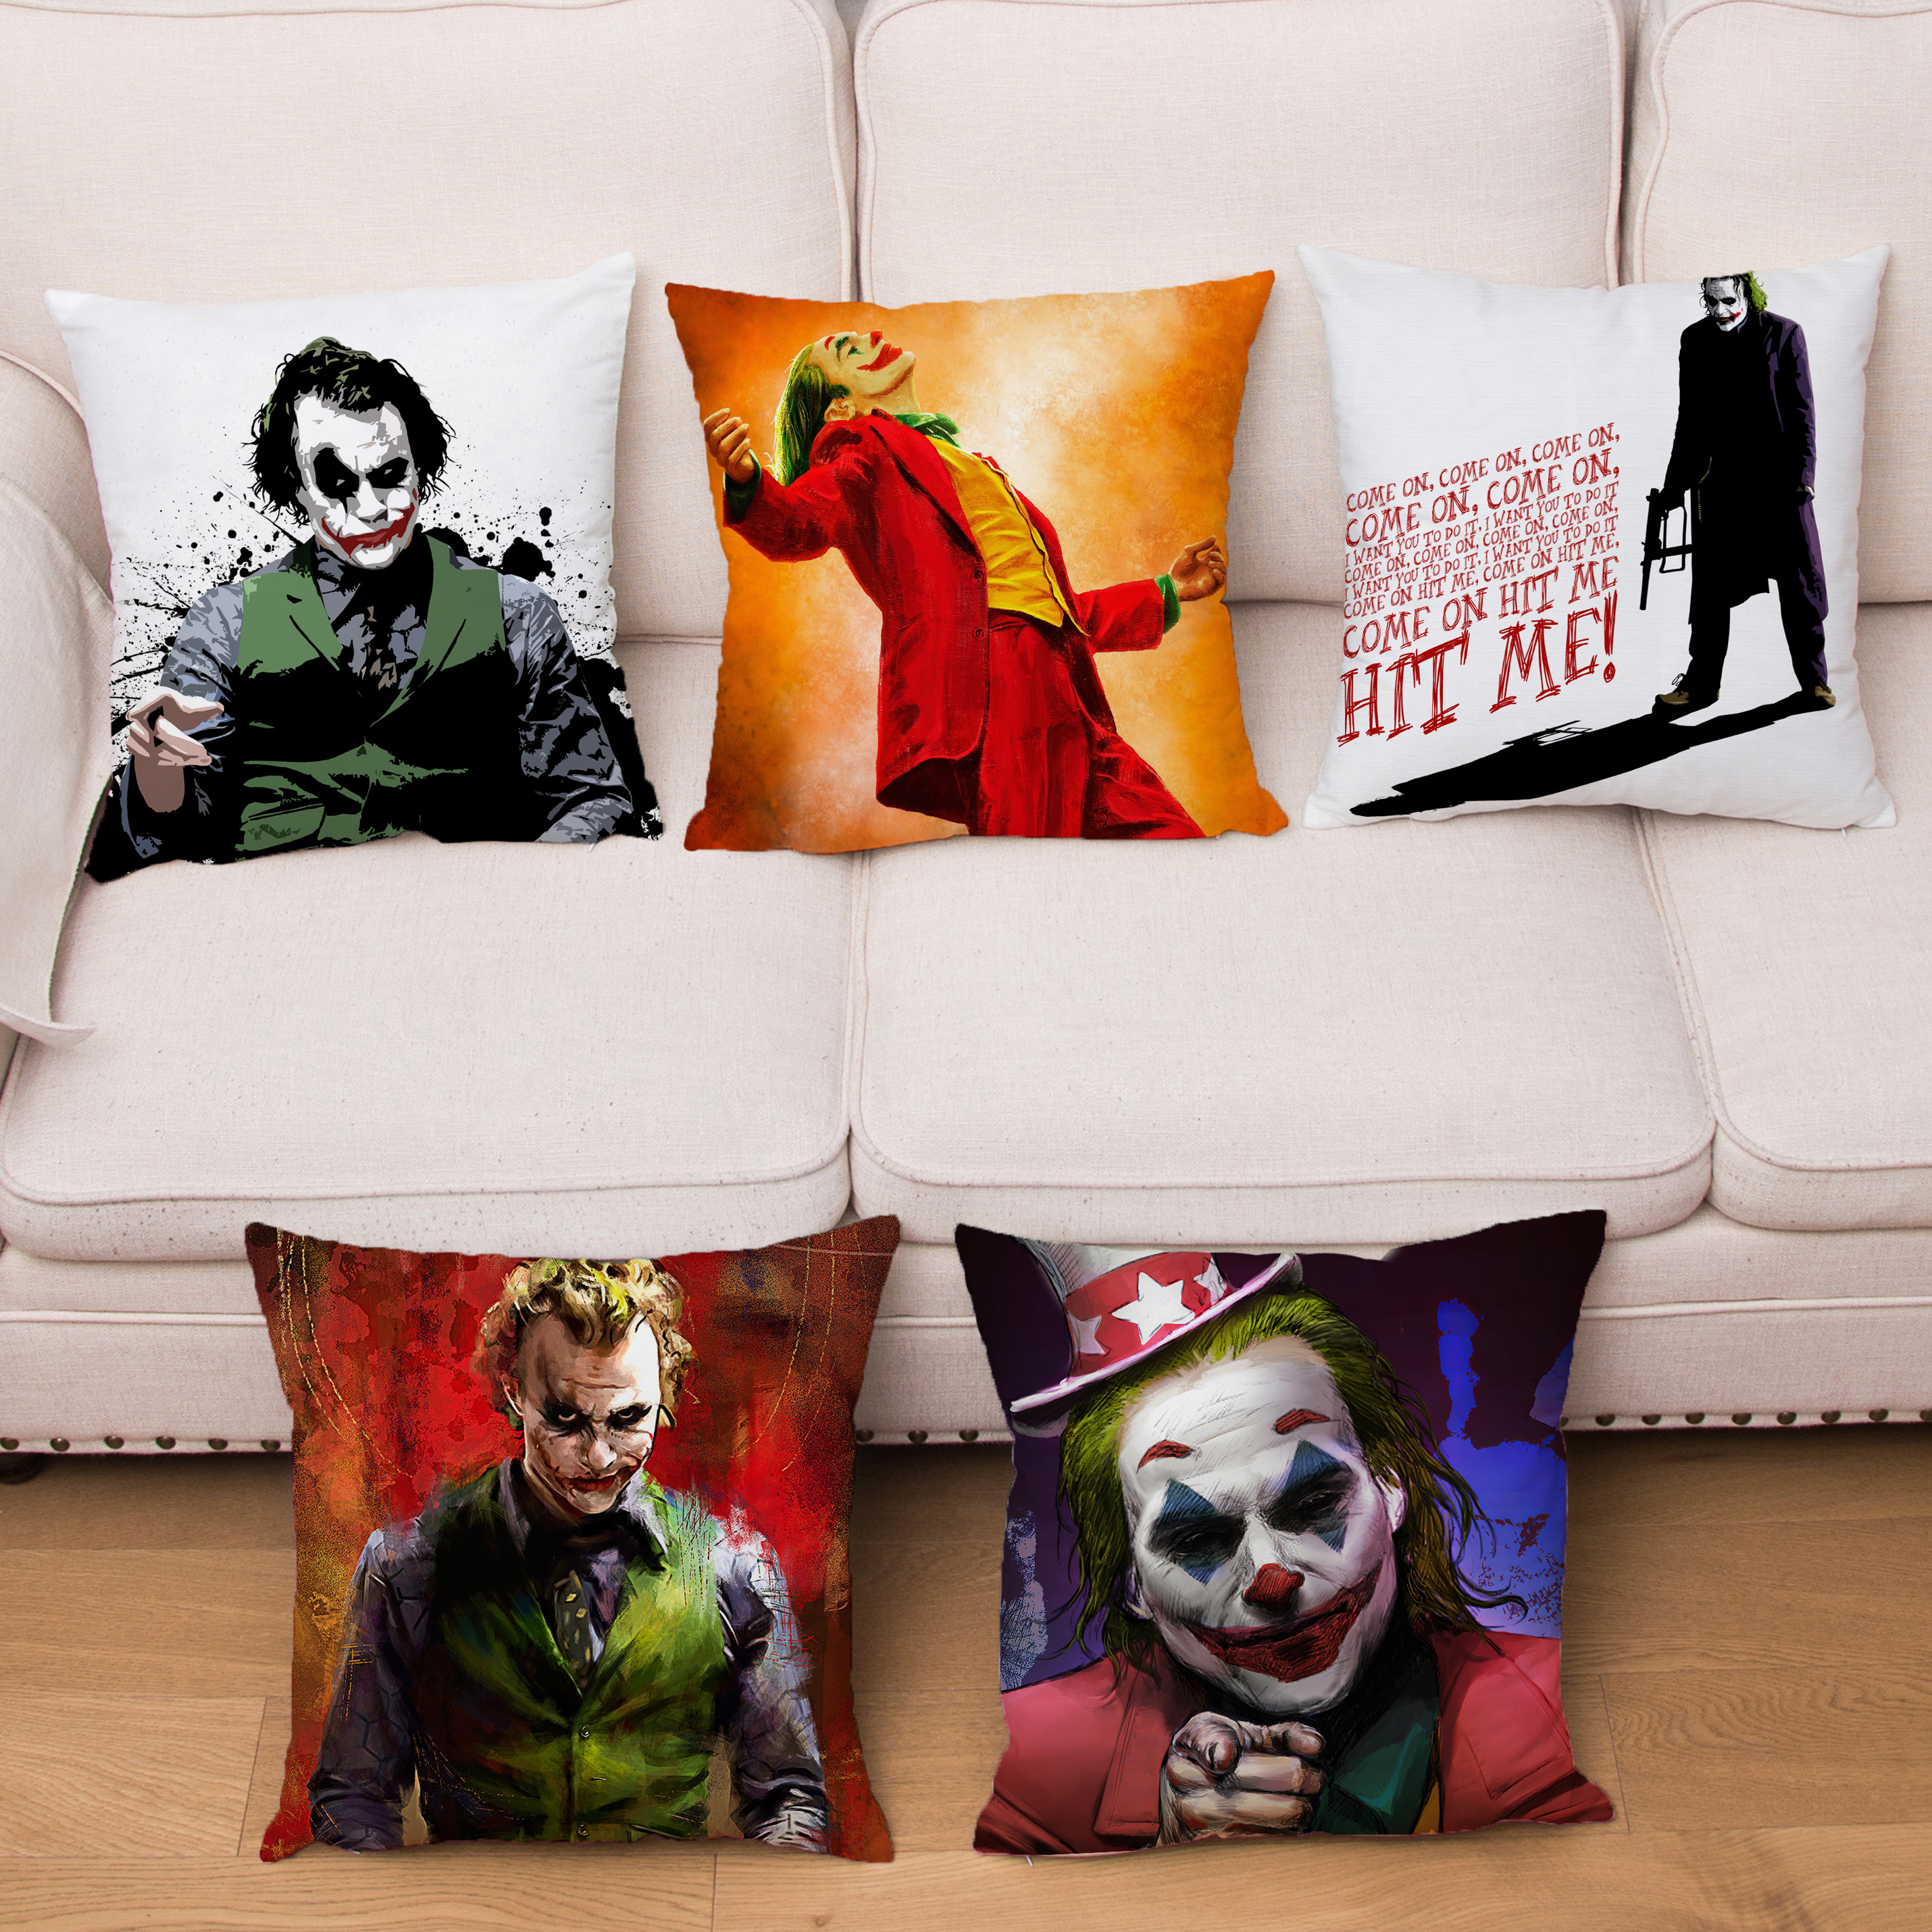 Comic Clown Joker Print Pillow Cover Short Plush Cushion Covers 45*45 Square Pliiows Cases Sofa Home Decor Pillowcase